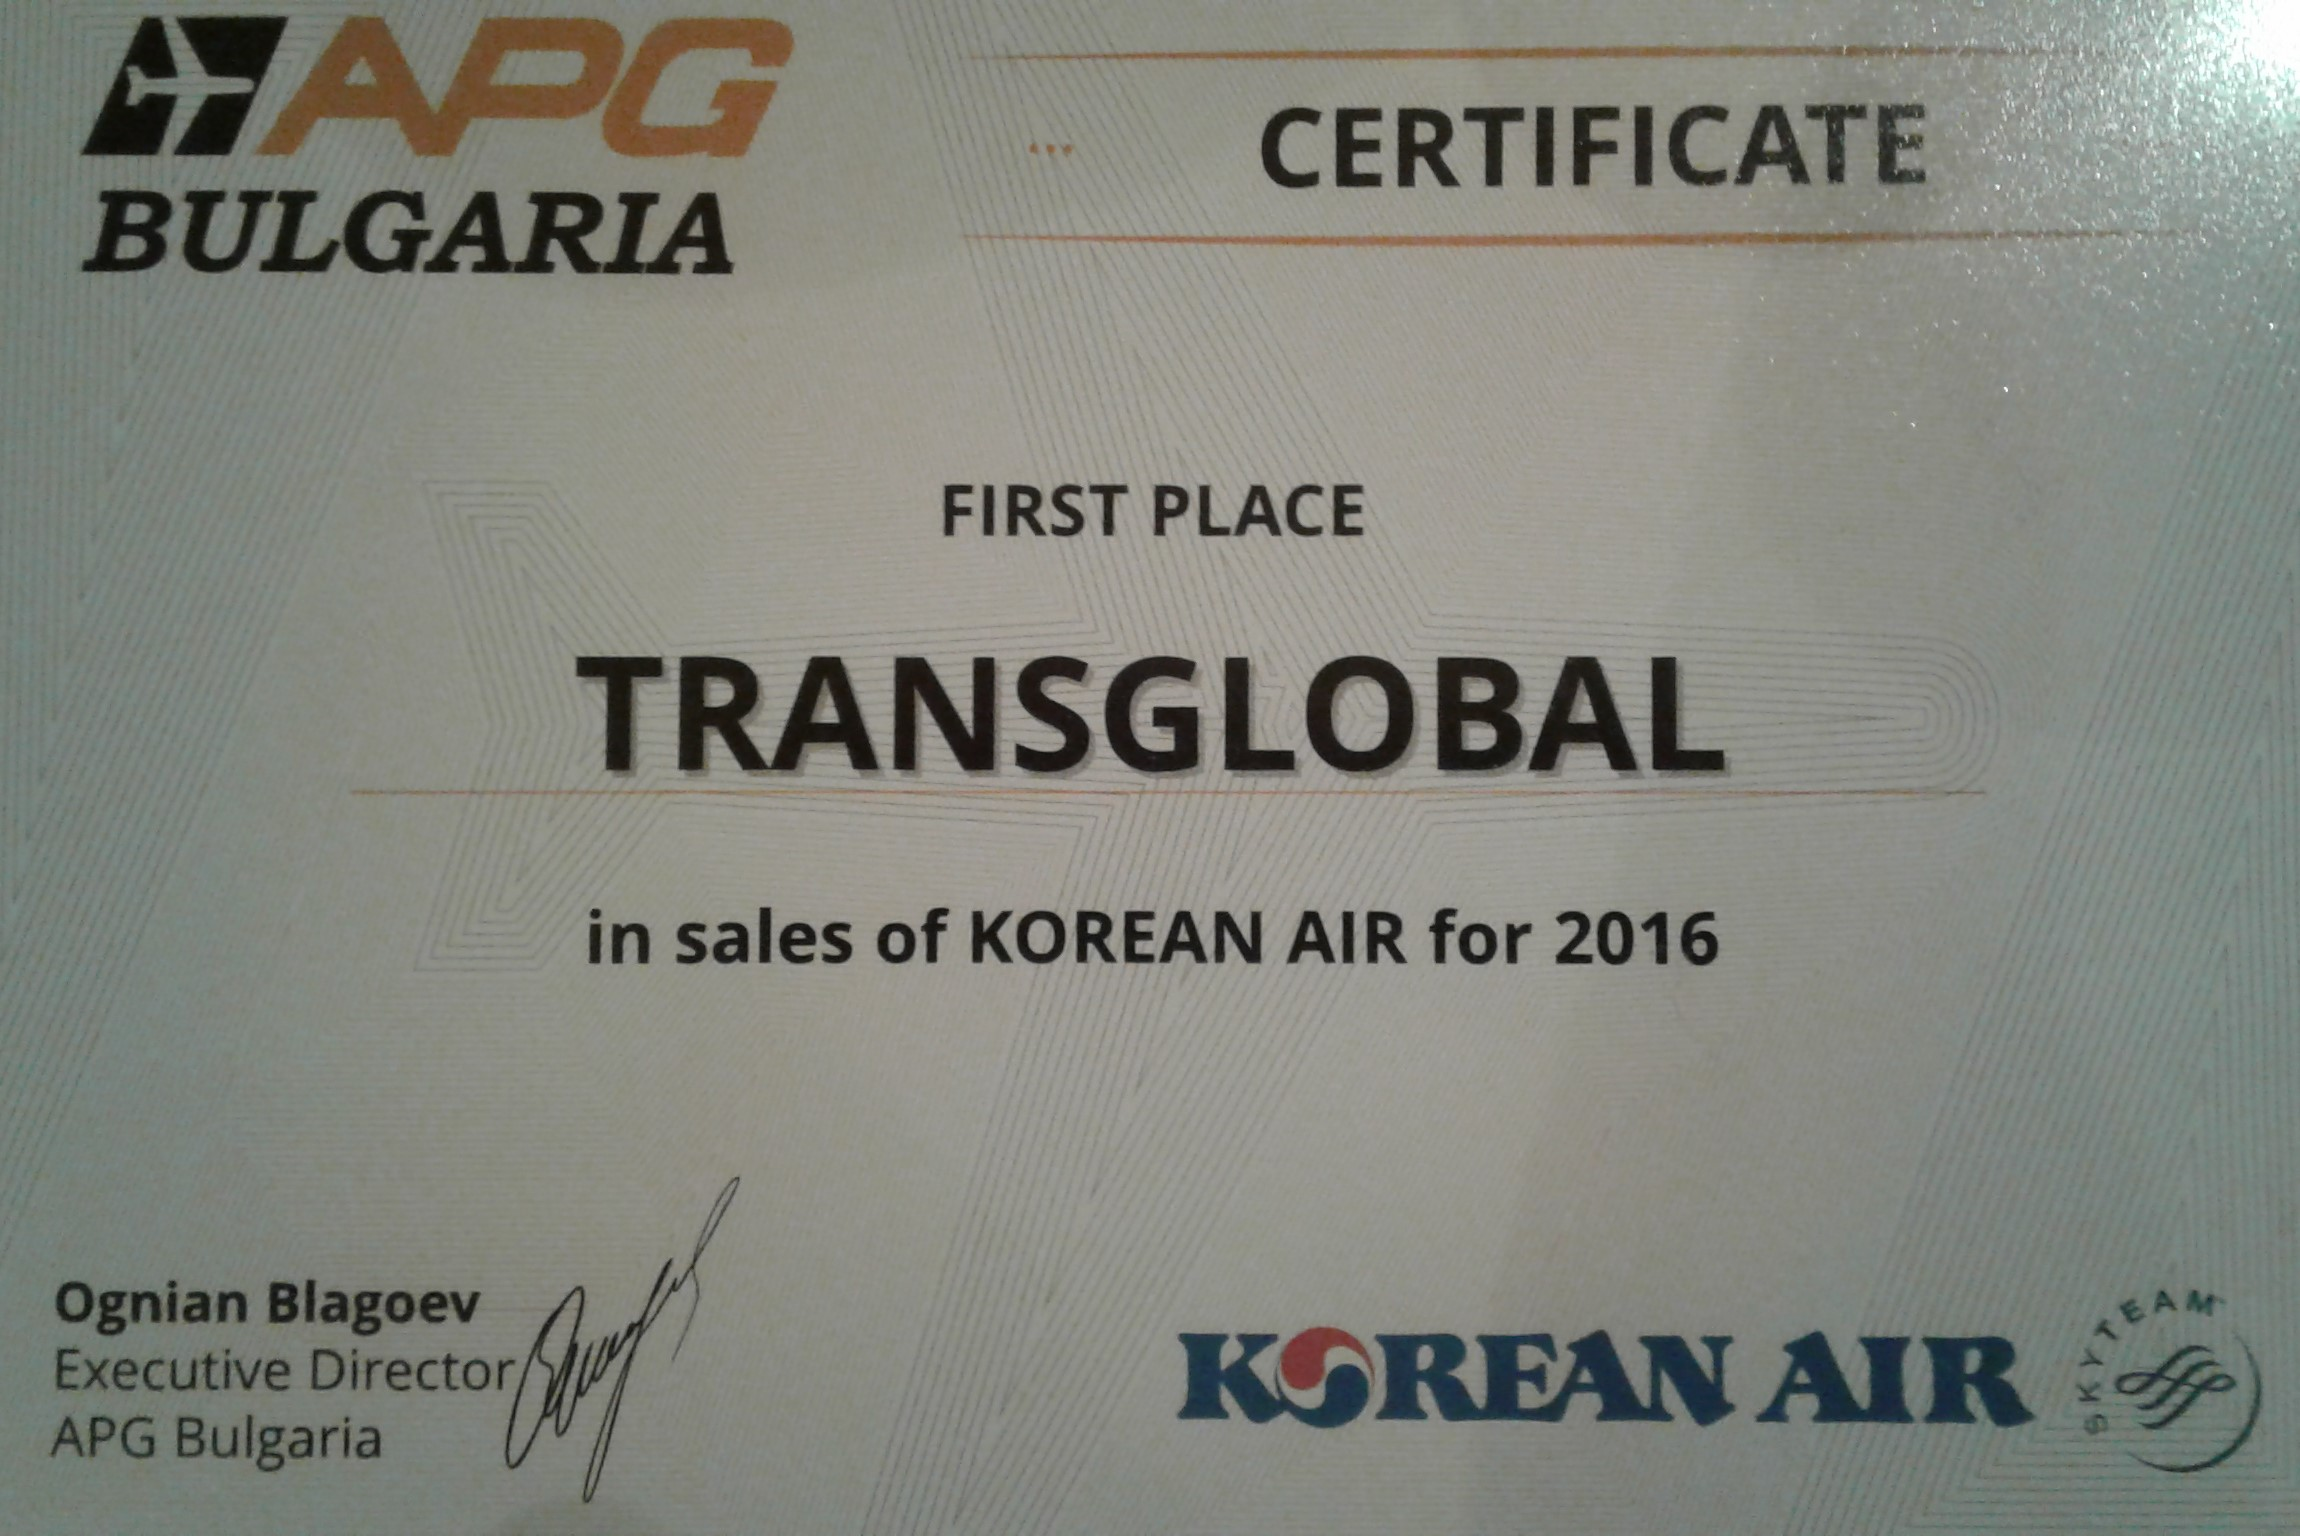 Korean Air Certificate